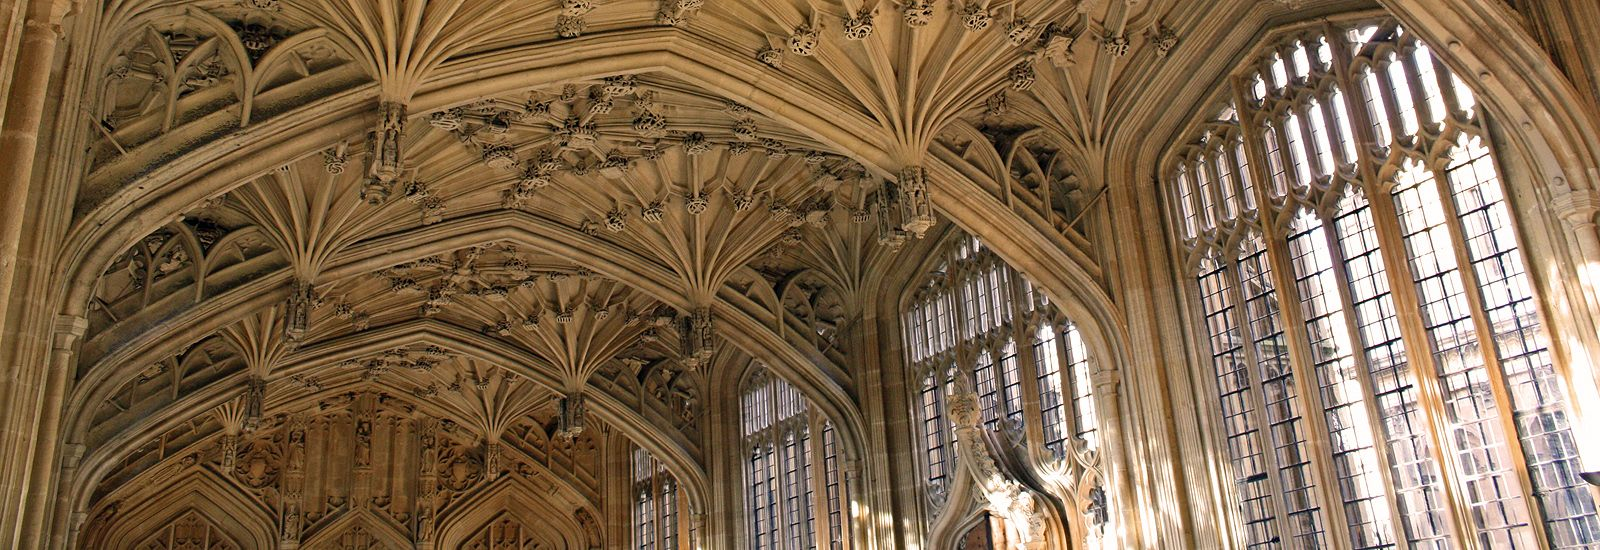 The vaulted ceiling in the Divinity School